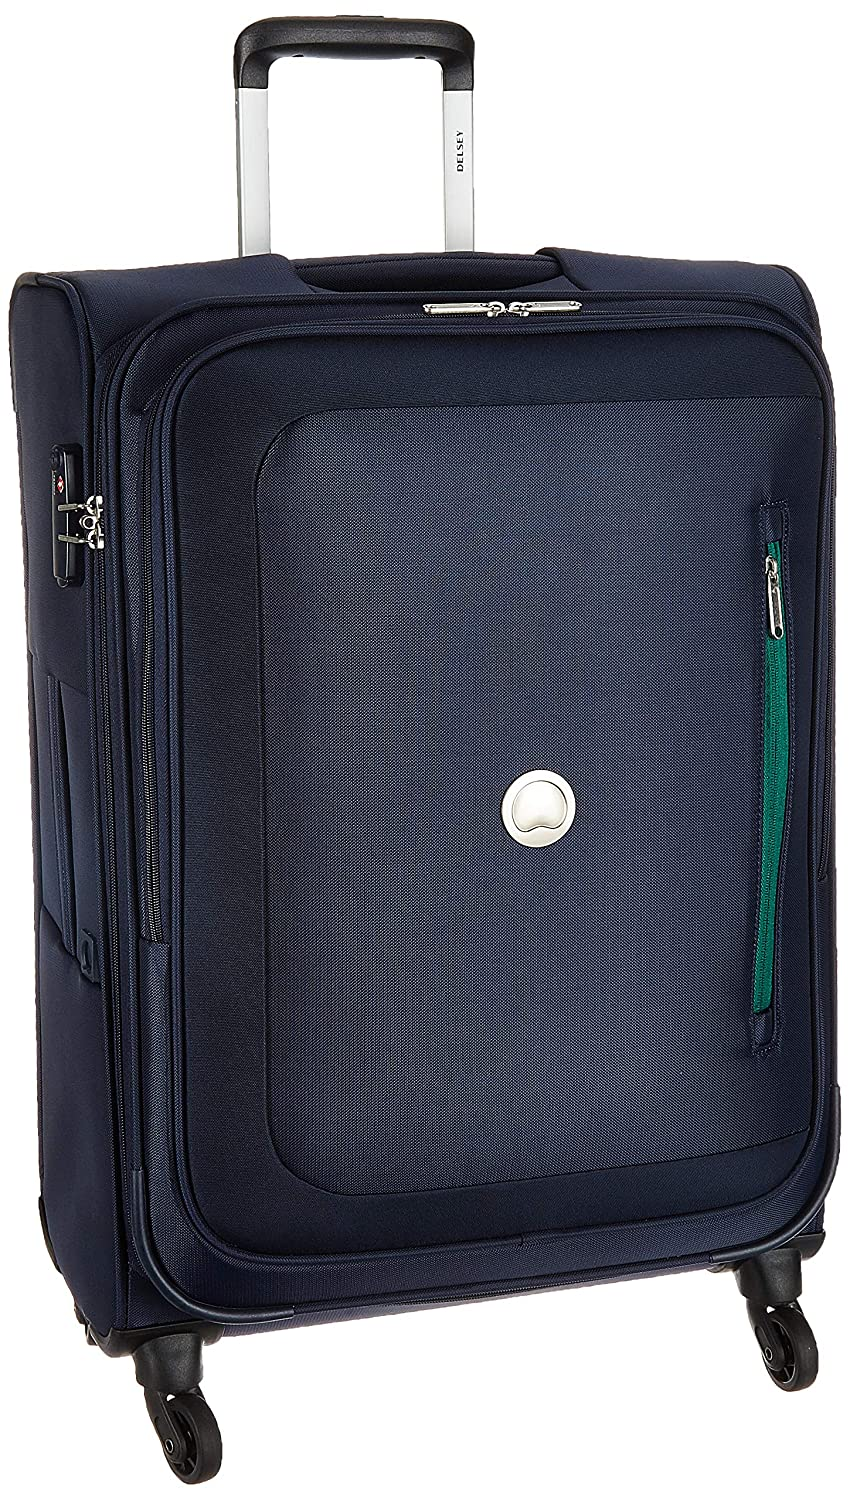 Delsey Polyester 78 cms Navy Blue Softsided Cabin Luggage